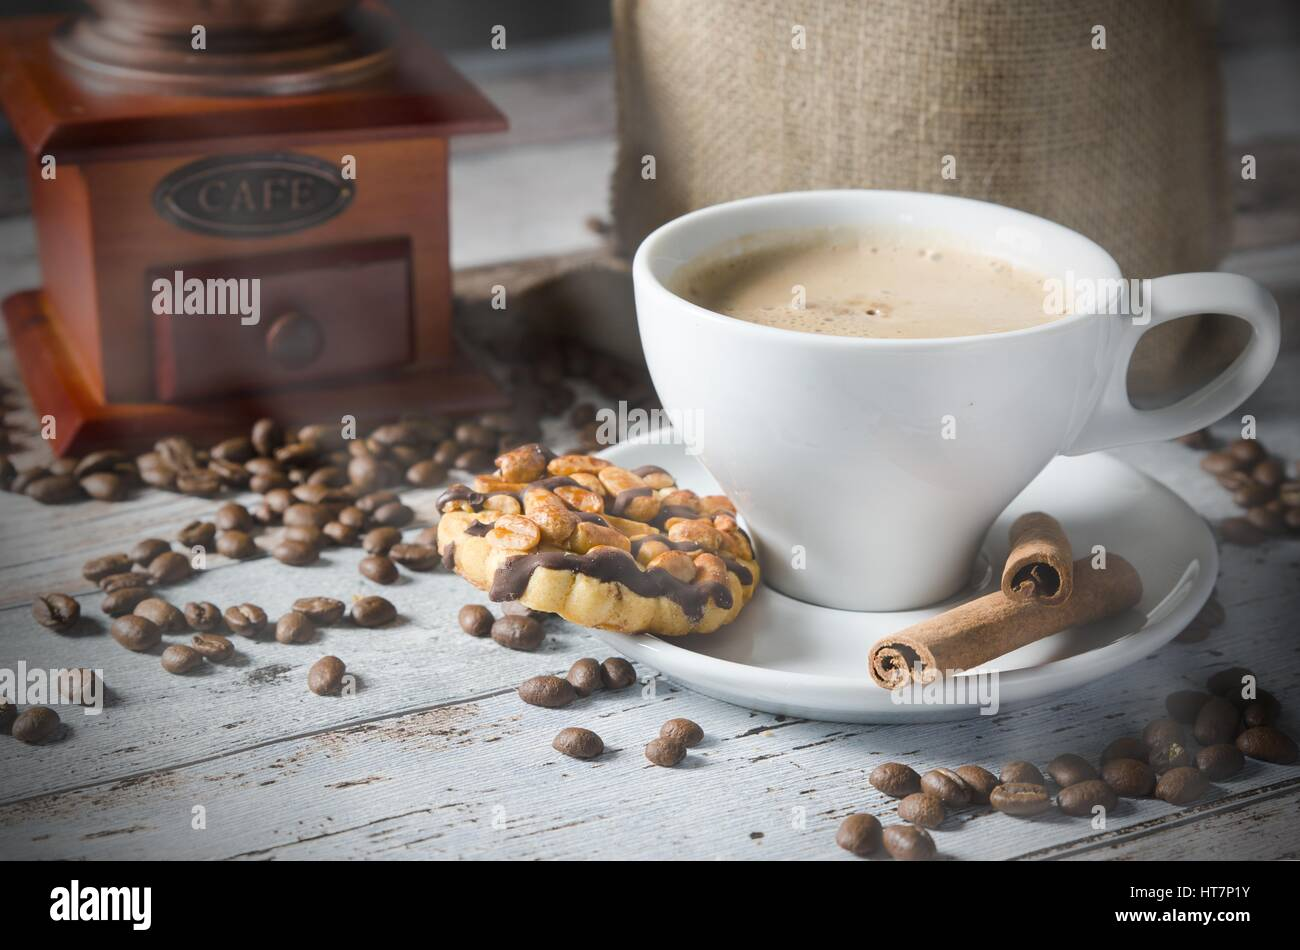 Coffee, roasted beans, mill grinder and cookie with nuts on wooden background - Stock Image